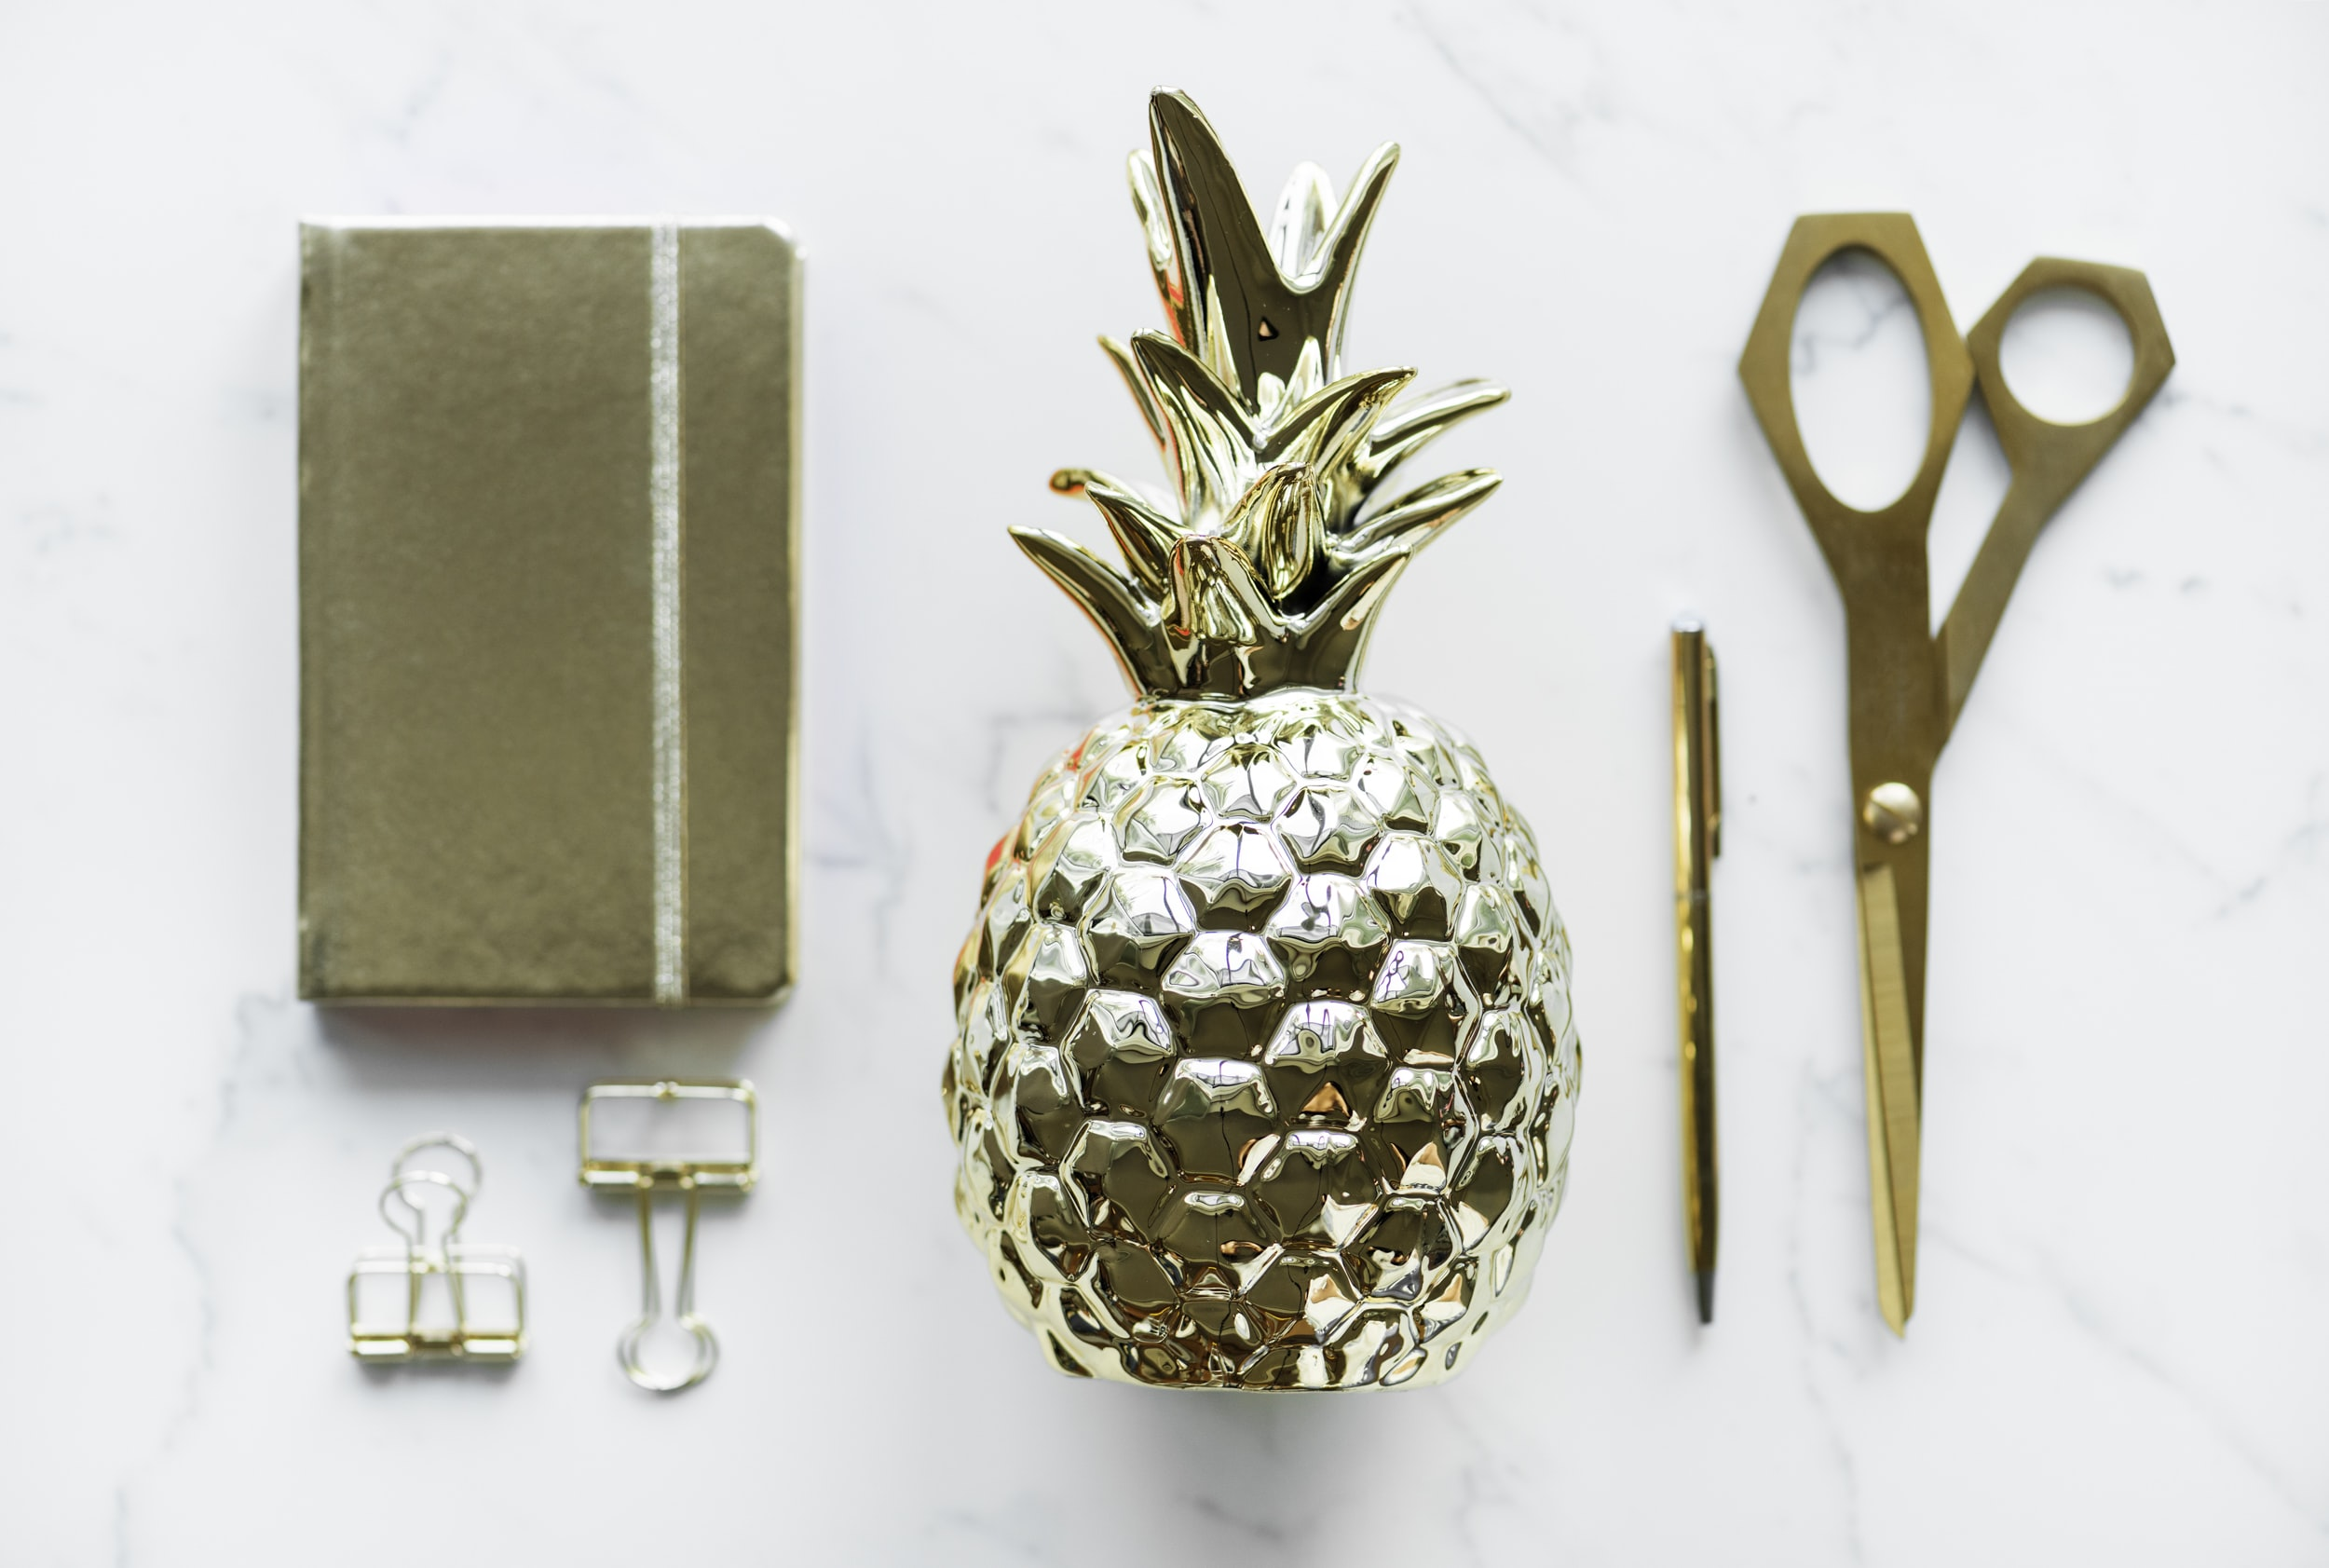 flat lay photography of scissors and book against white surface